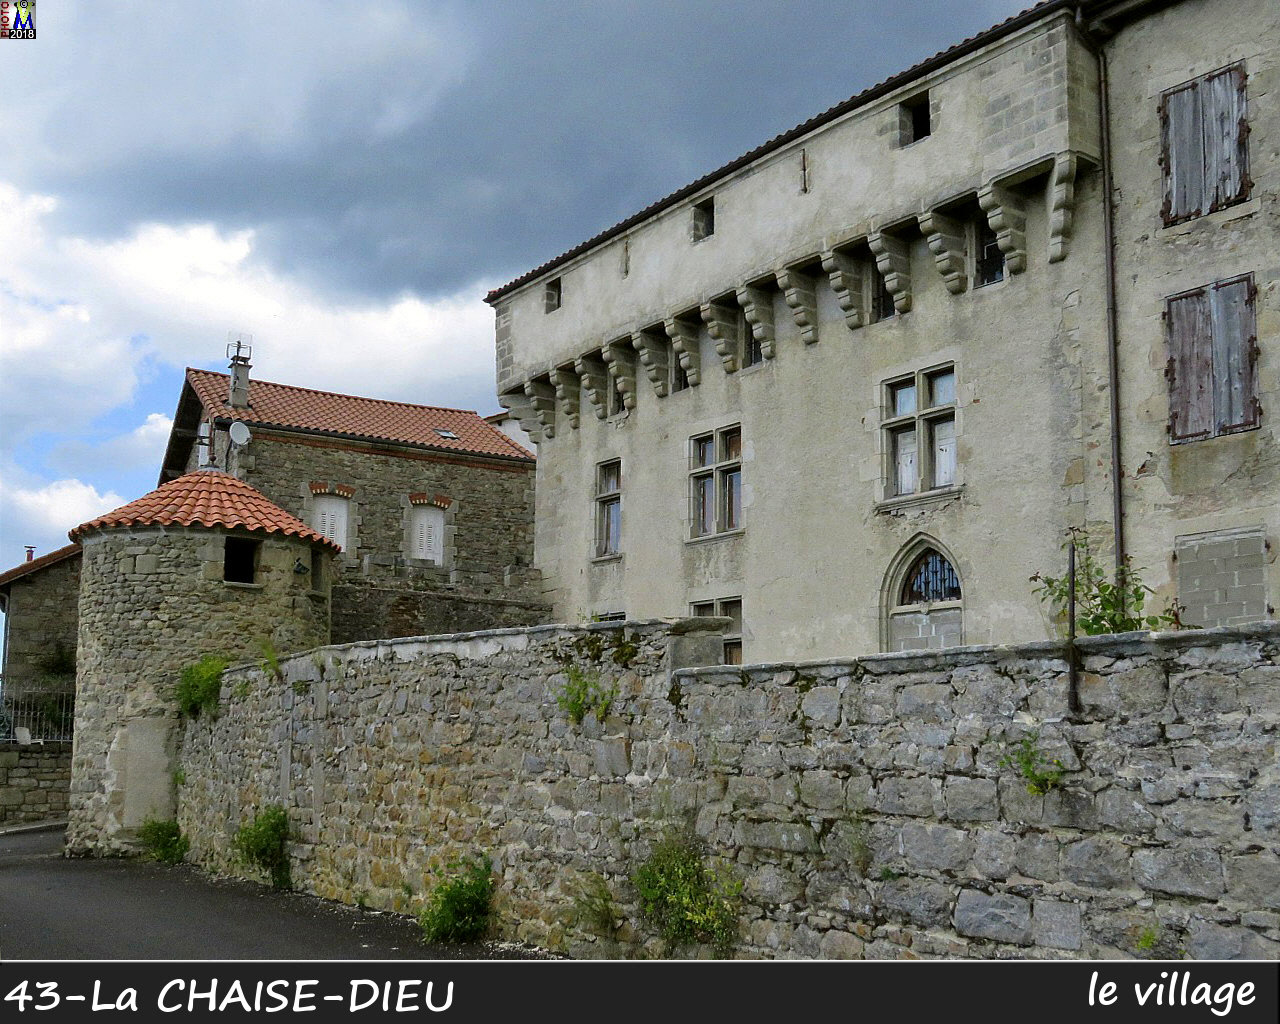 43CHAISE-DIEU_village_128.jpg